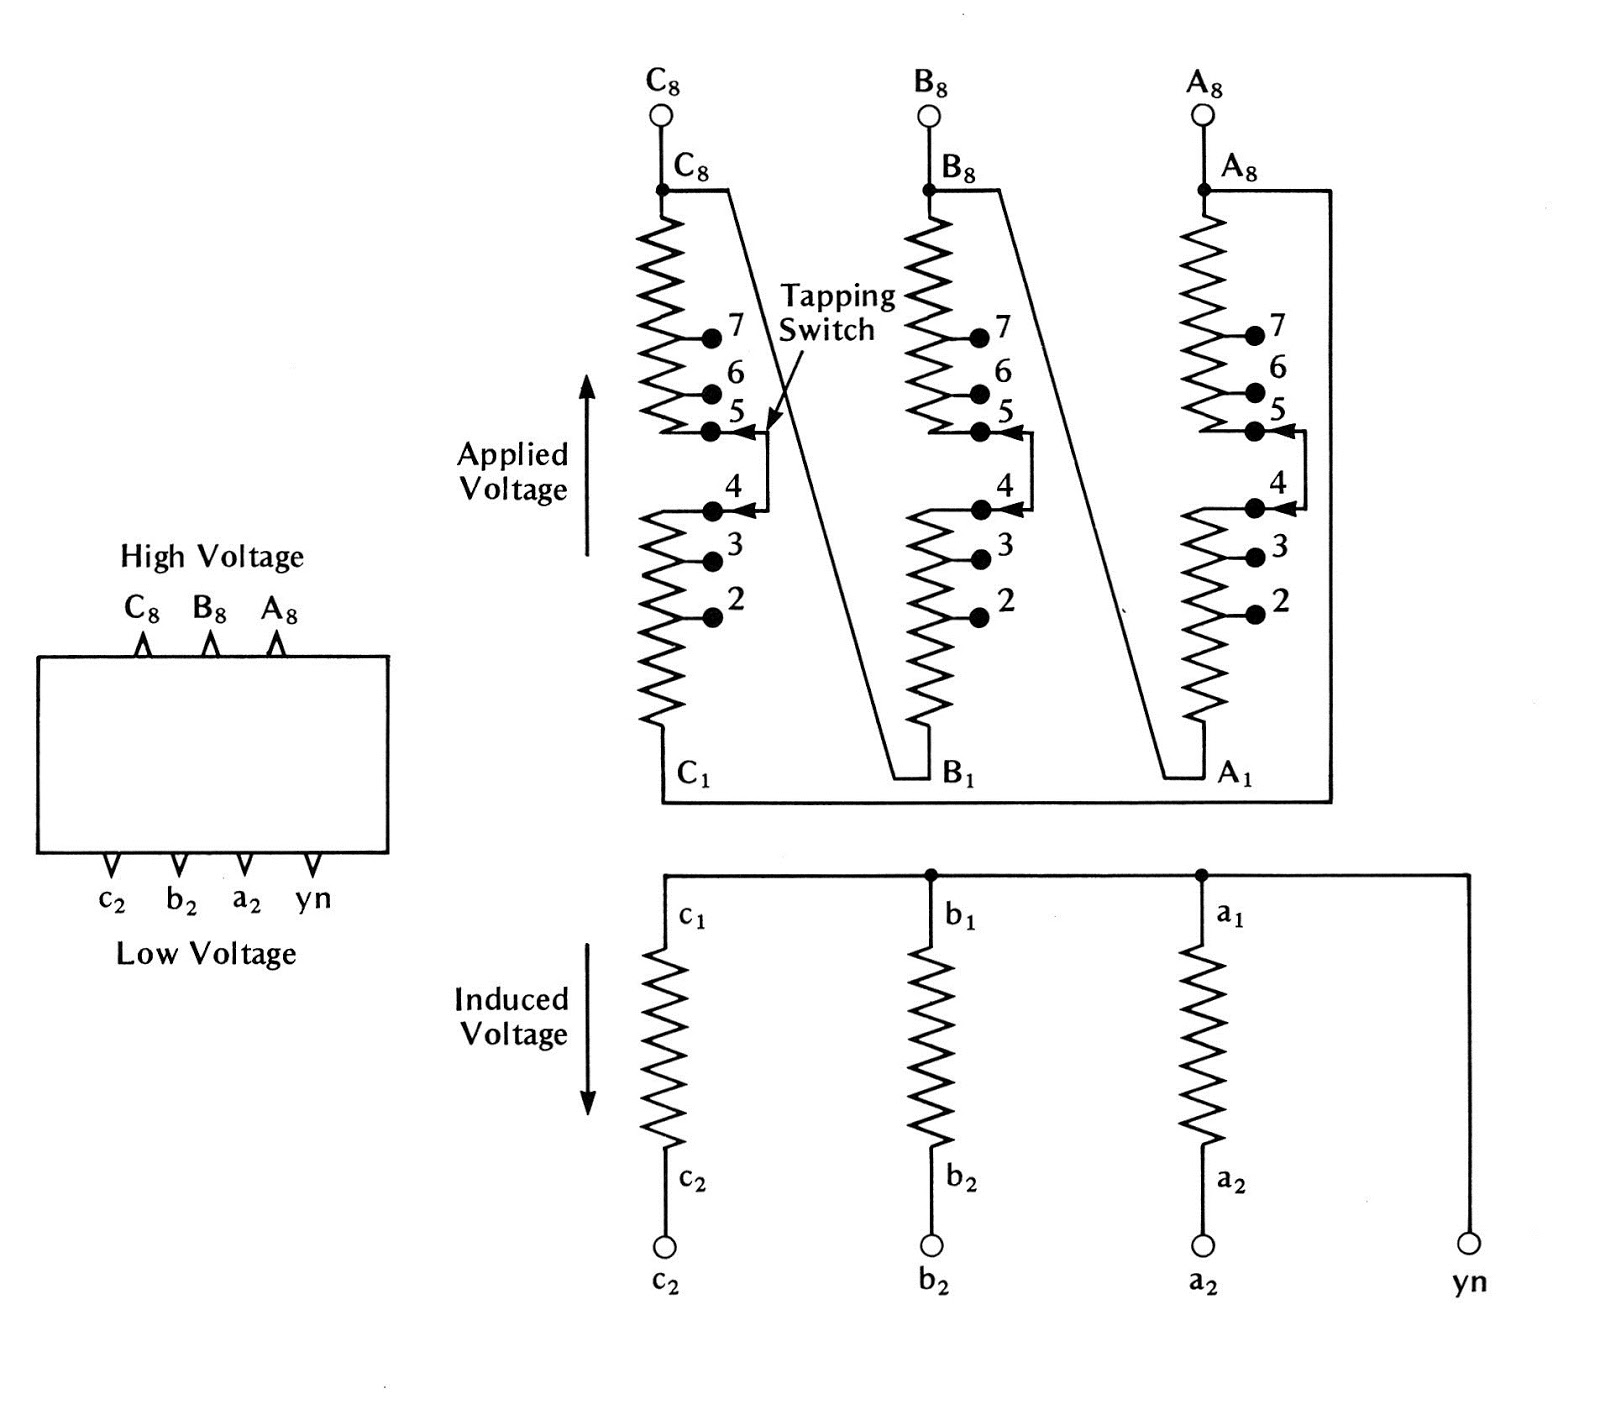 Engineering Photos,Videos and Articels (Engineering Search Engine): CHAPTER 1 POWER TRANSFORMERS